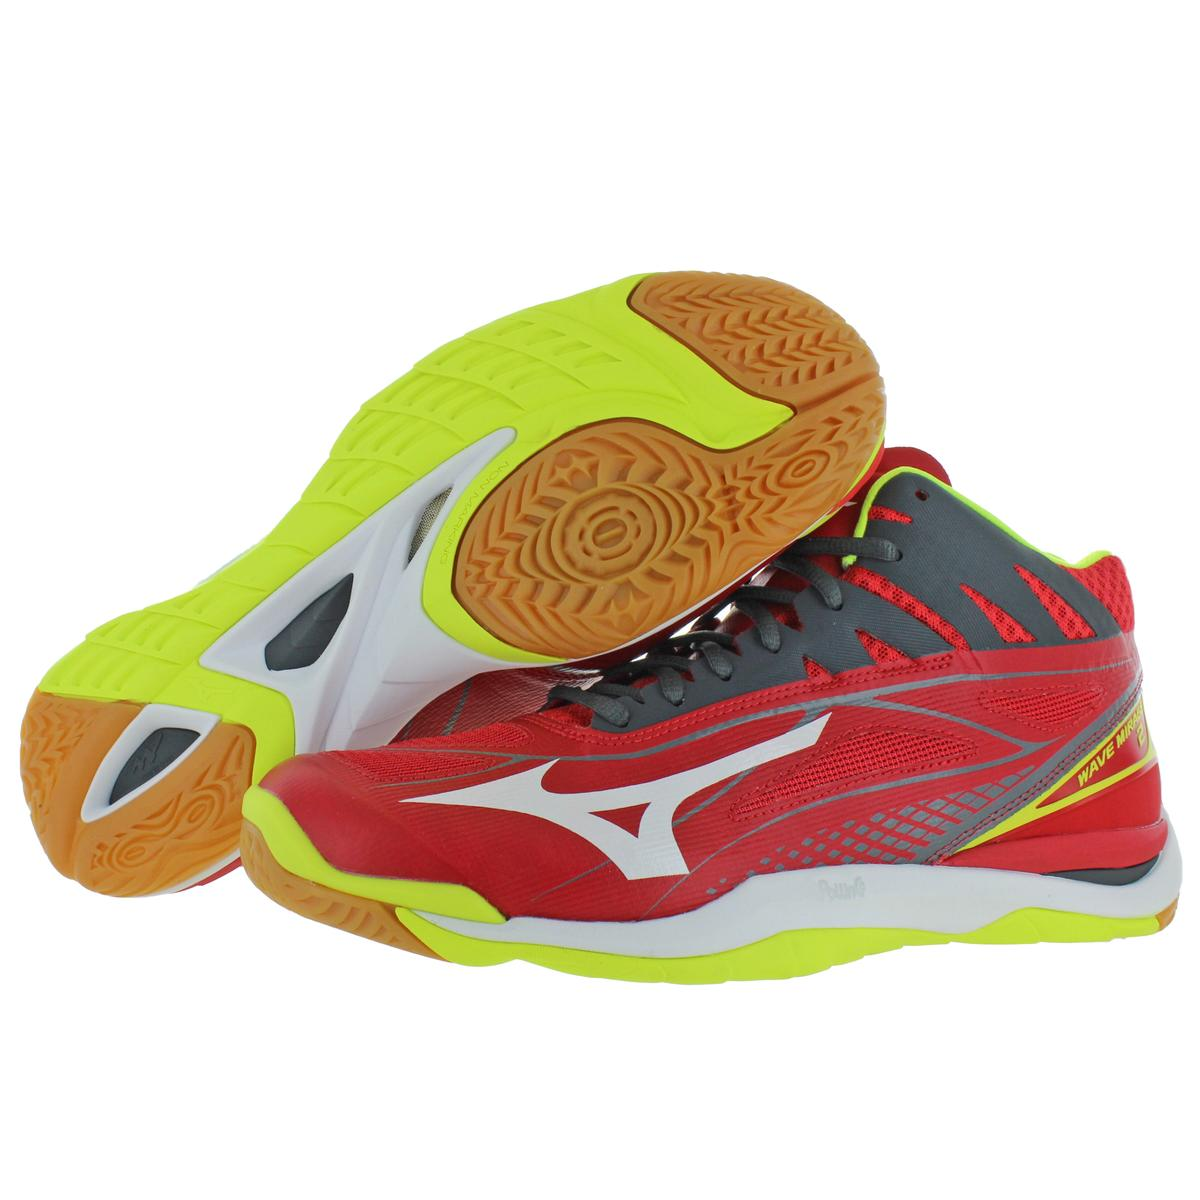 Mizuno-Mens-Wave-Mirage-2-Mid-Lace-Up-Mid-Top-Handball-Sneakers-Shoes-BHFO-9977 thumbnail 6